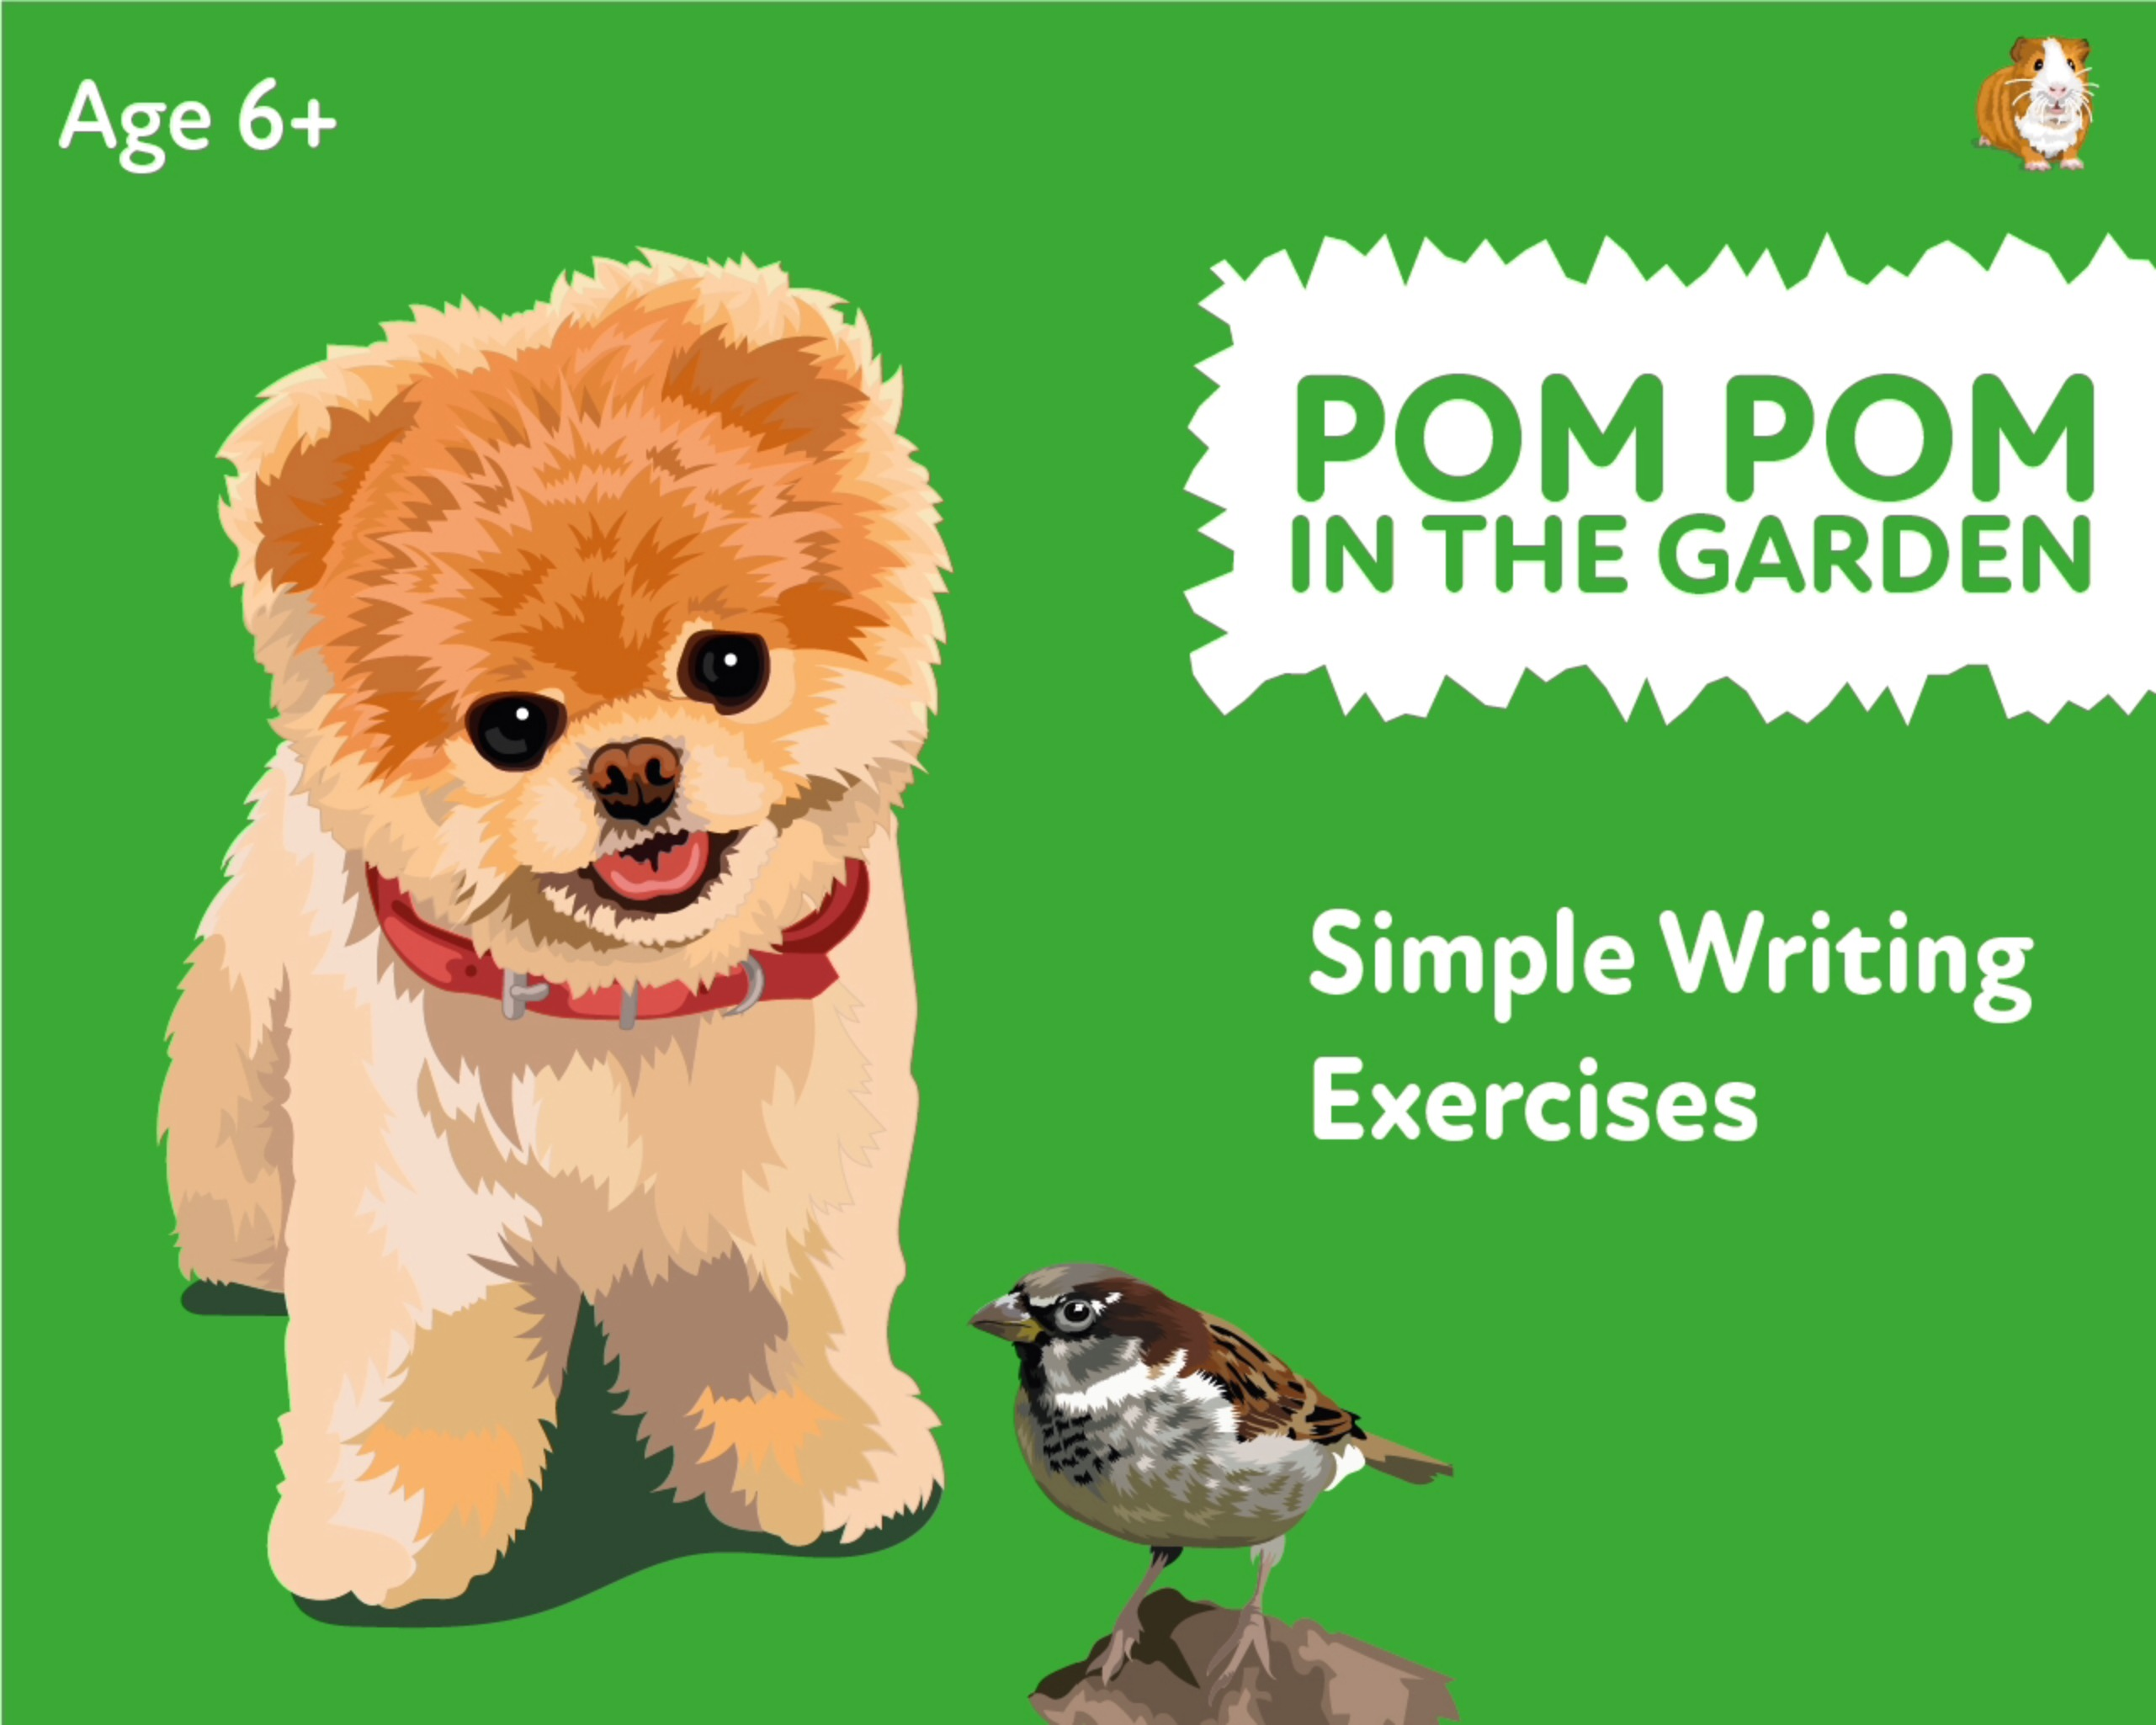 'Pom Pom Stays Alert In The Garden' A Fun Writing And Drawing Activity (6 years +)